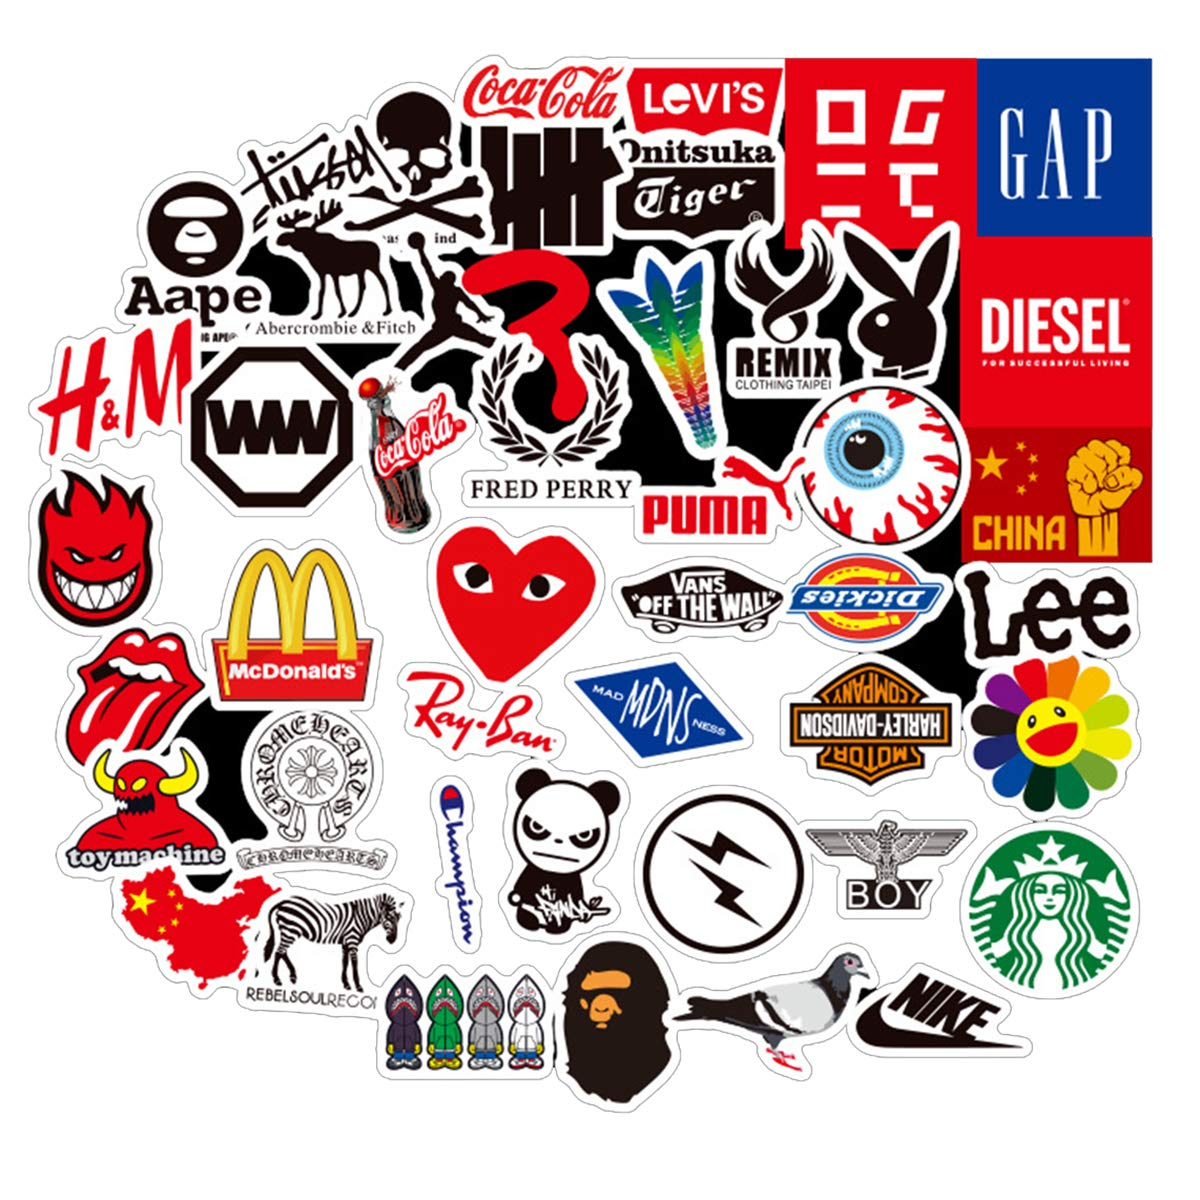 Mini Small Brand Logo Stickers Laptop Stickers Fashion Computer Vinyl  Sticker Waterproof Bike Skateboard Luggage Decal Graffiti Patches Decal 58  PCS.